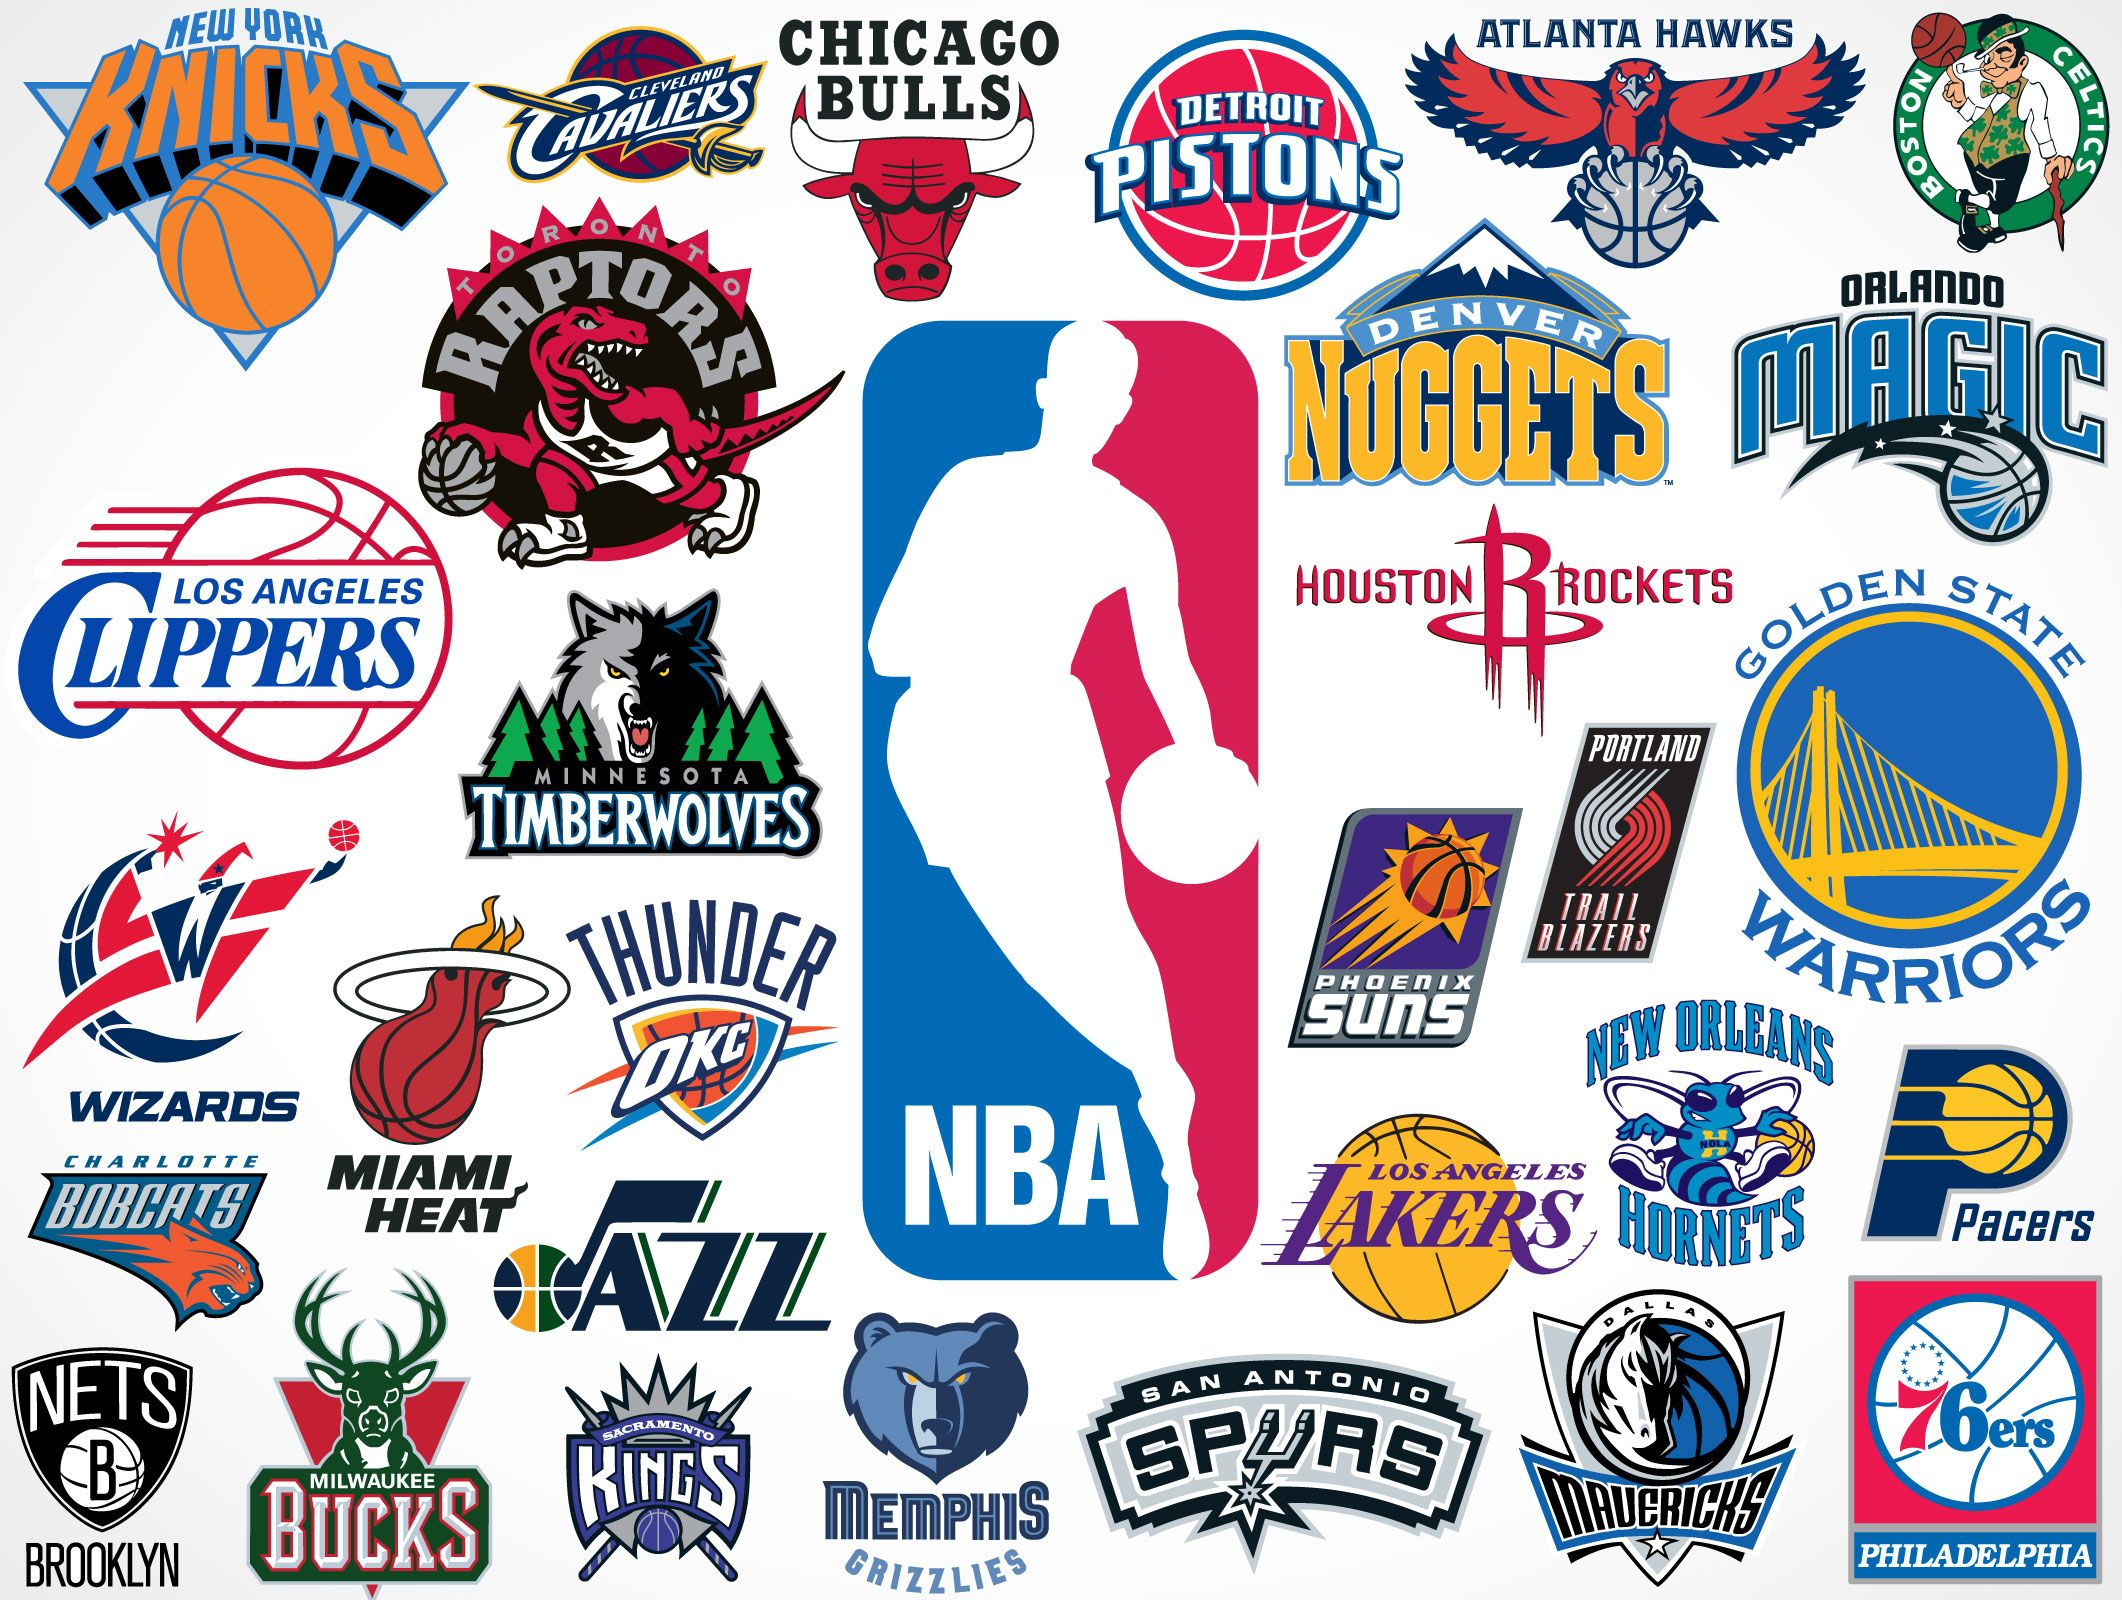 Pin by Douglas Pollino on teams | NBA, Nba basketball ...